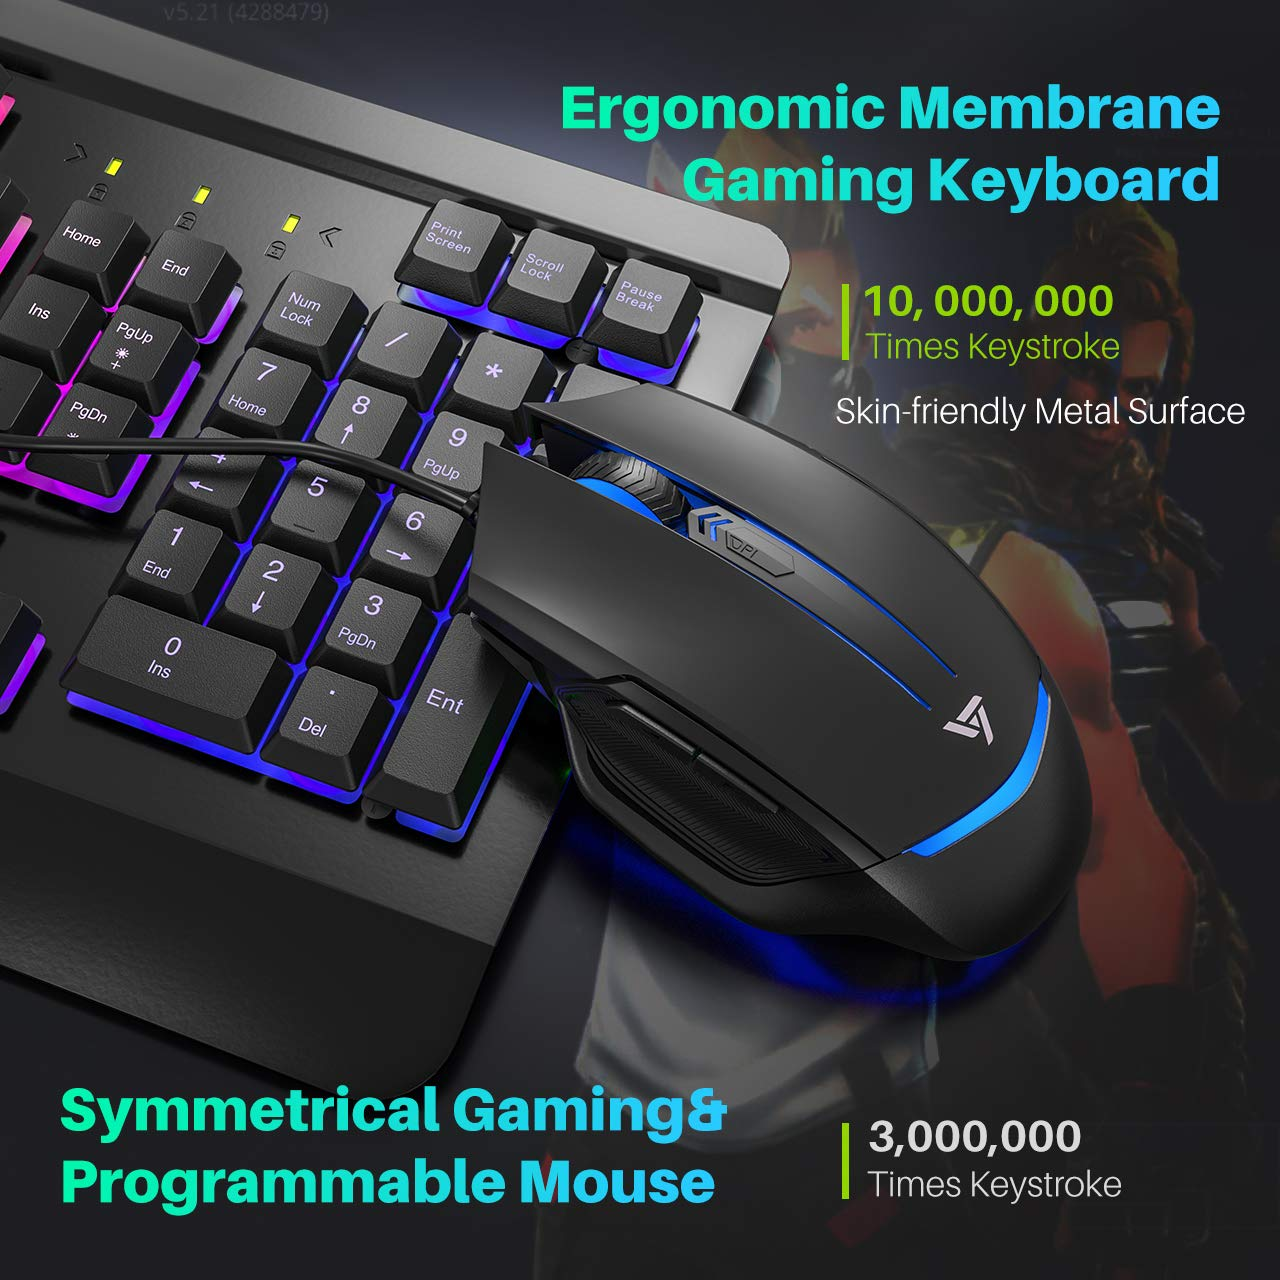 VicTsing Gaming Keyboard Mouse Combo, Ultra-Slim Rainbow LED Backlit Keyboard with Ergonomic Wrist Rest, Programmable 6 Button Mouse for Windows PC Gamer, Spill-Resistant Design - Black by VicTsing (Image #2)